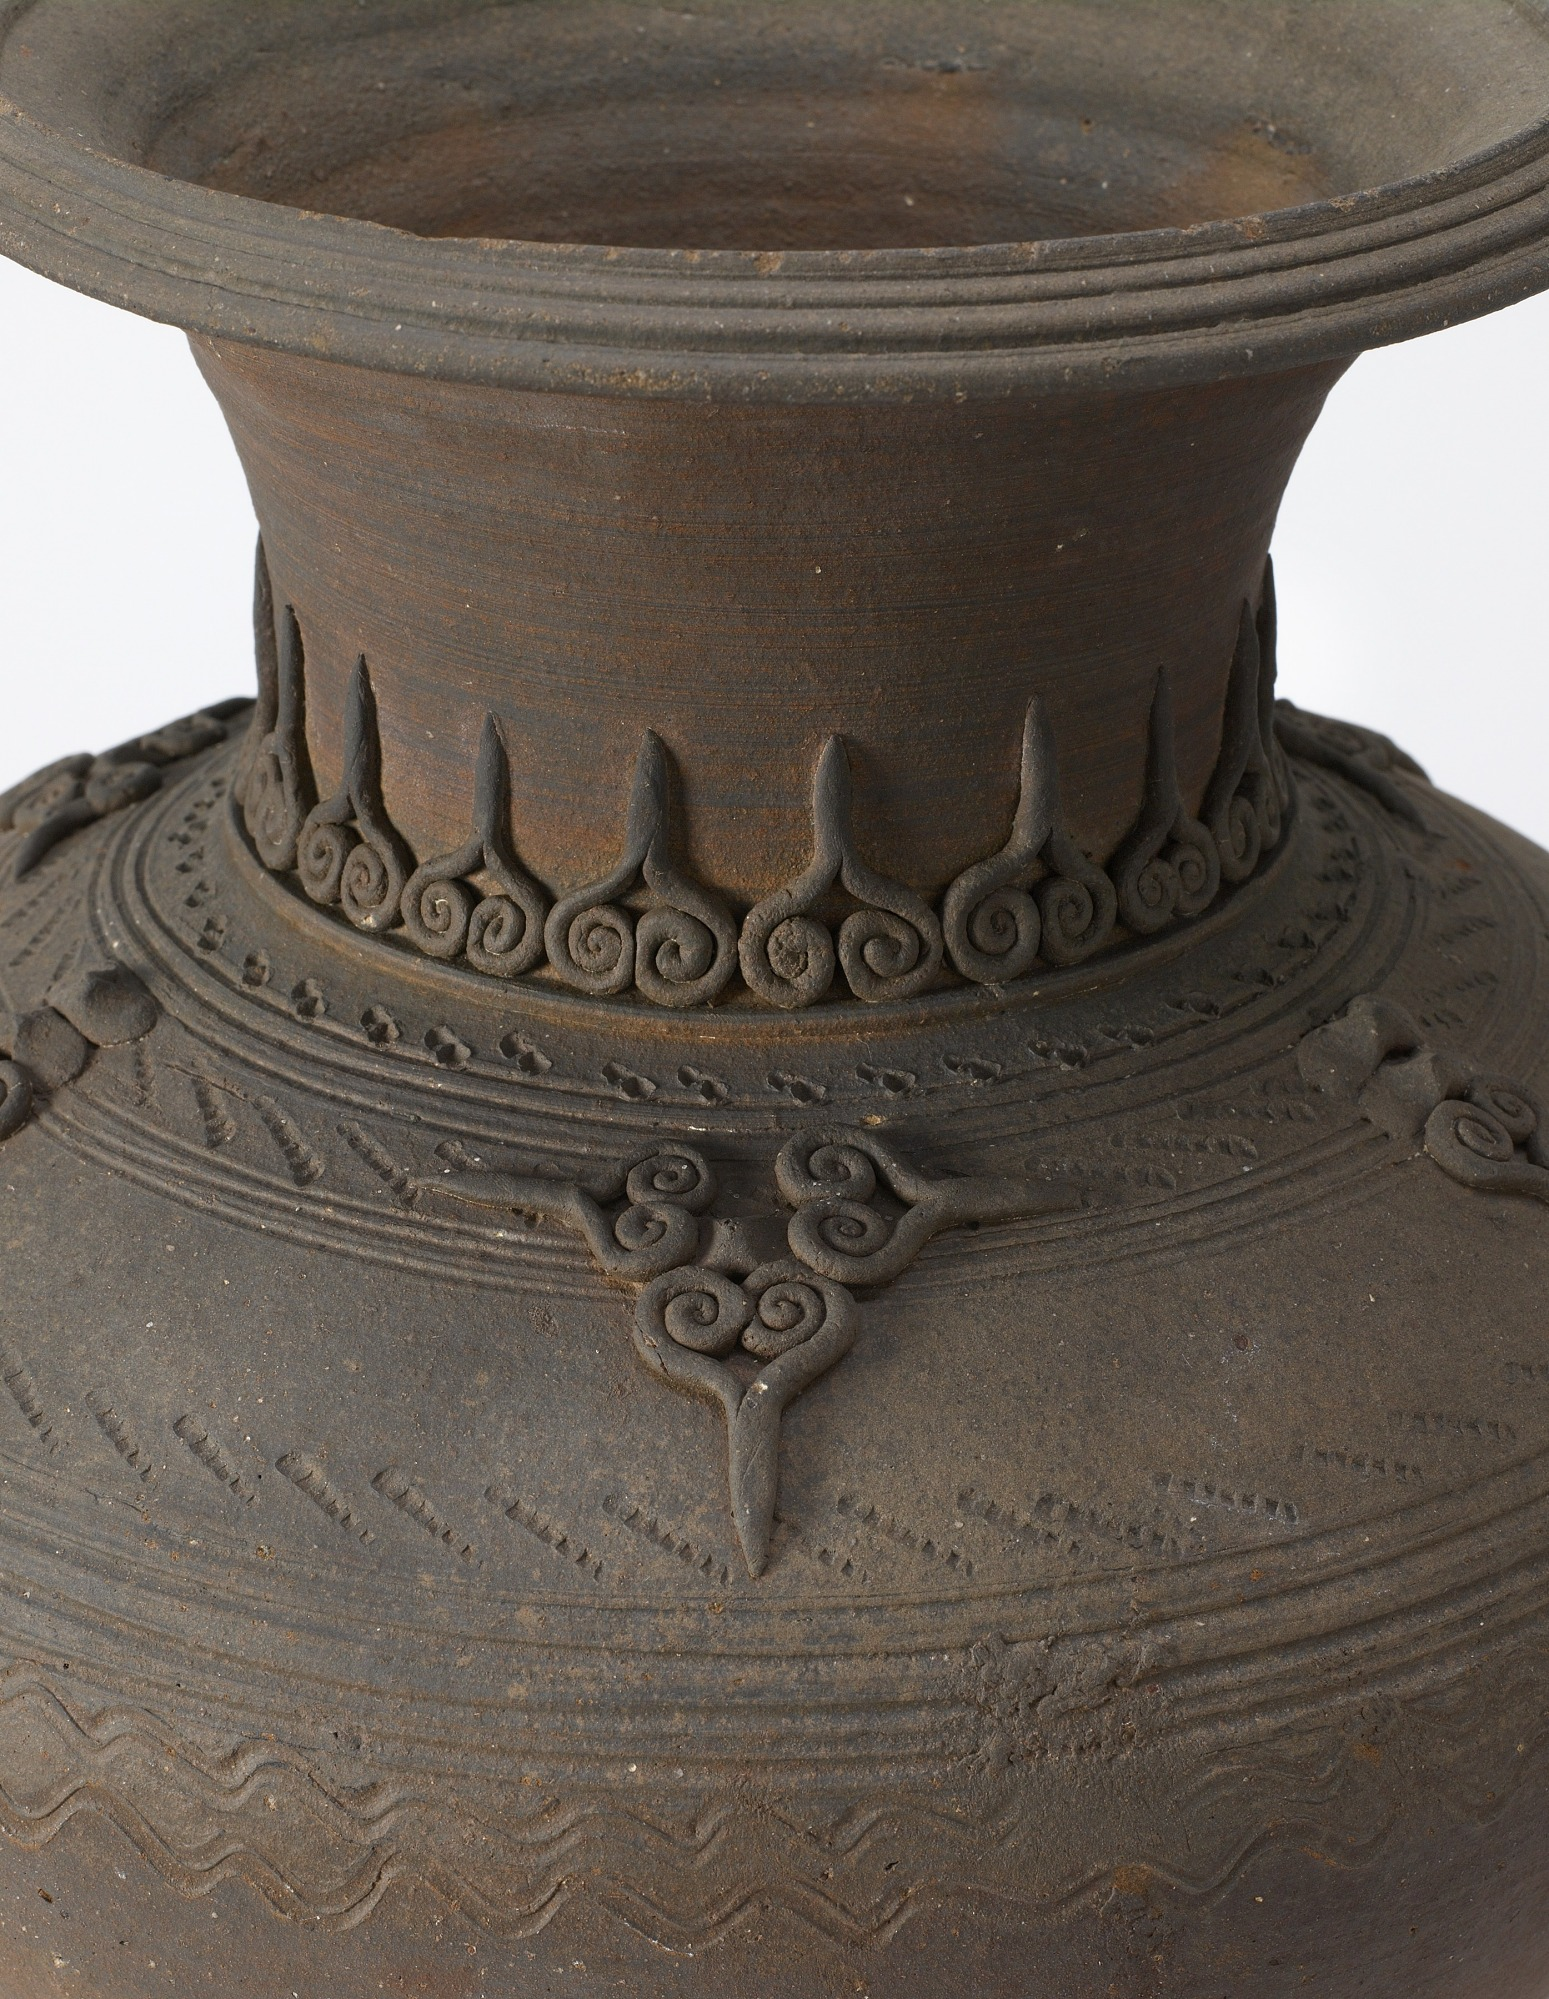 Jar with incised and applied decoration